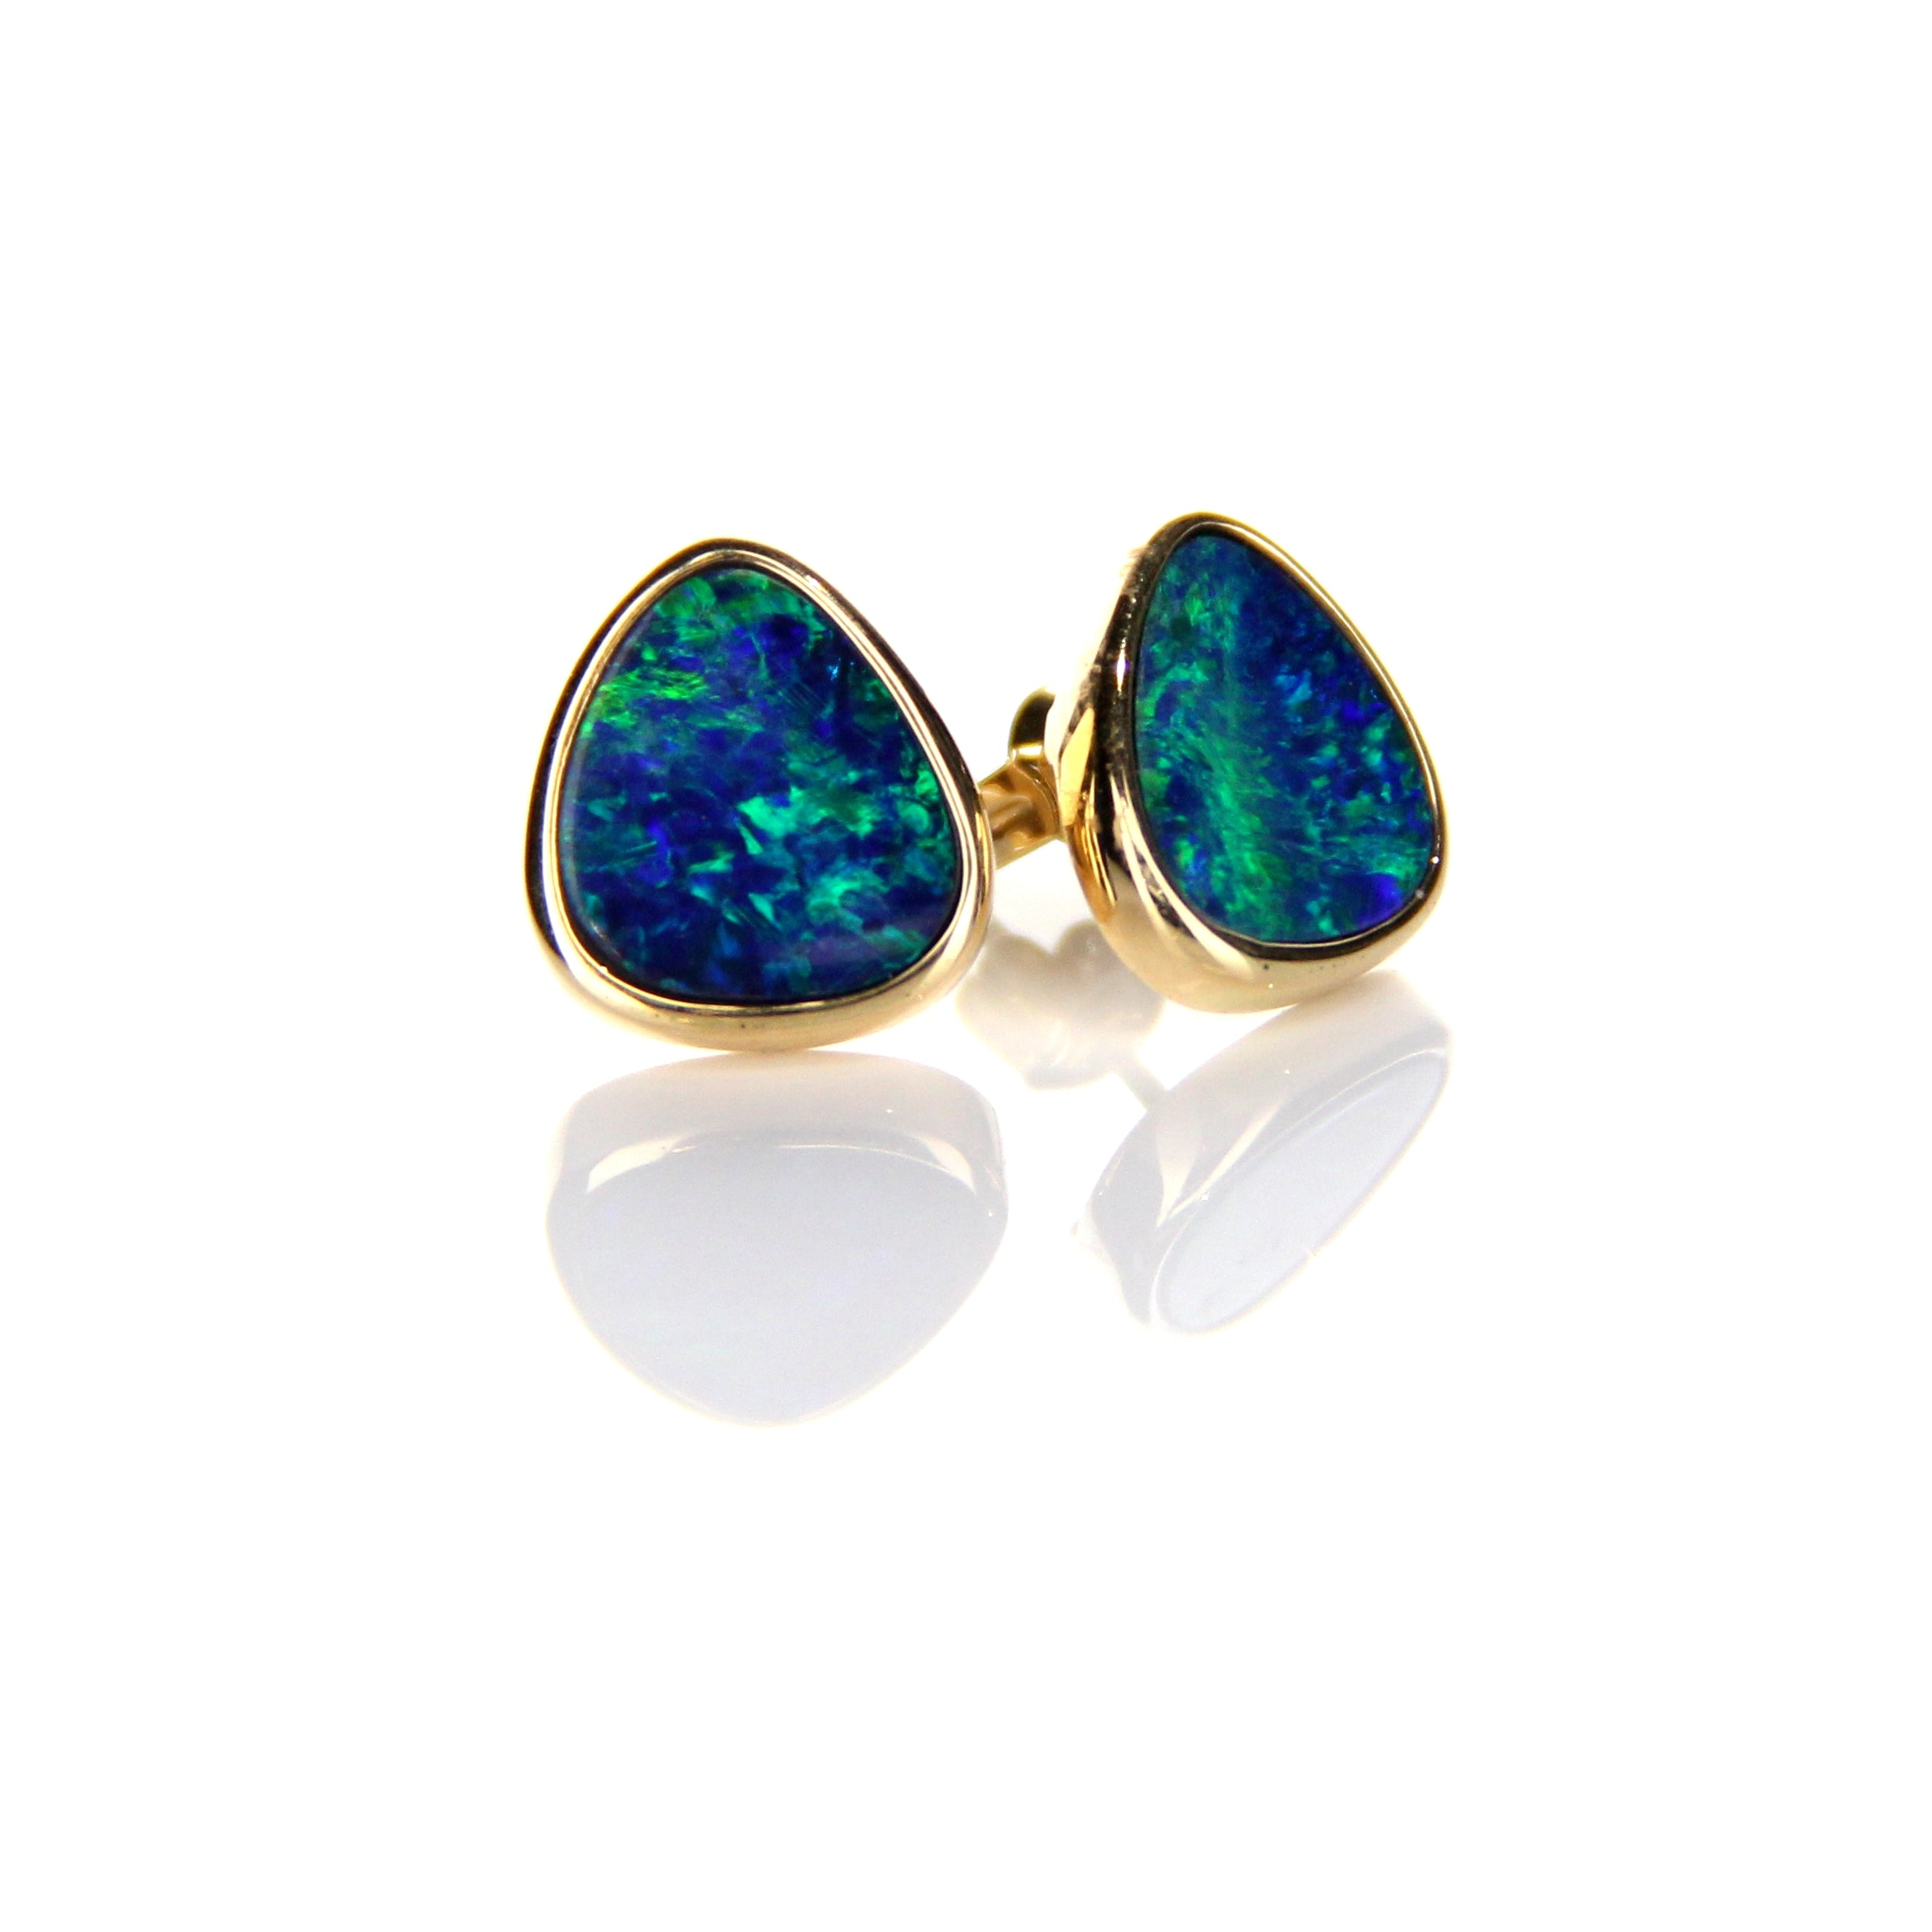 4.20ct Doublet Opal Earrings